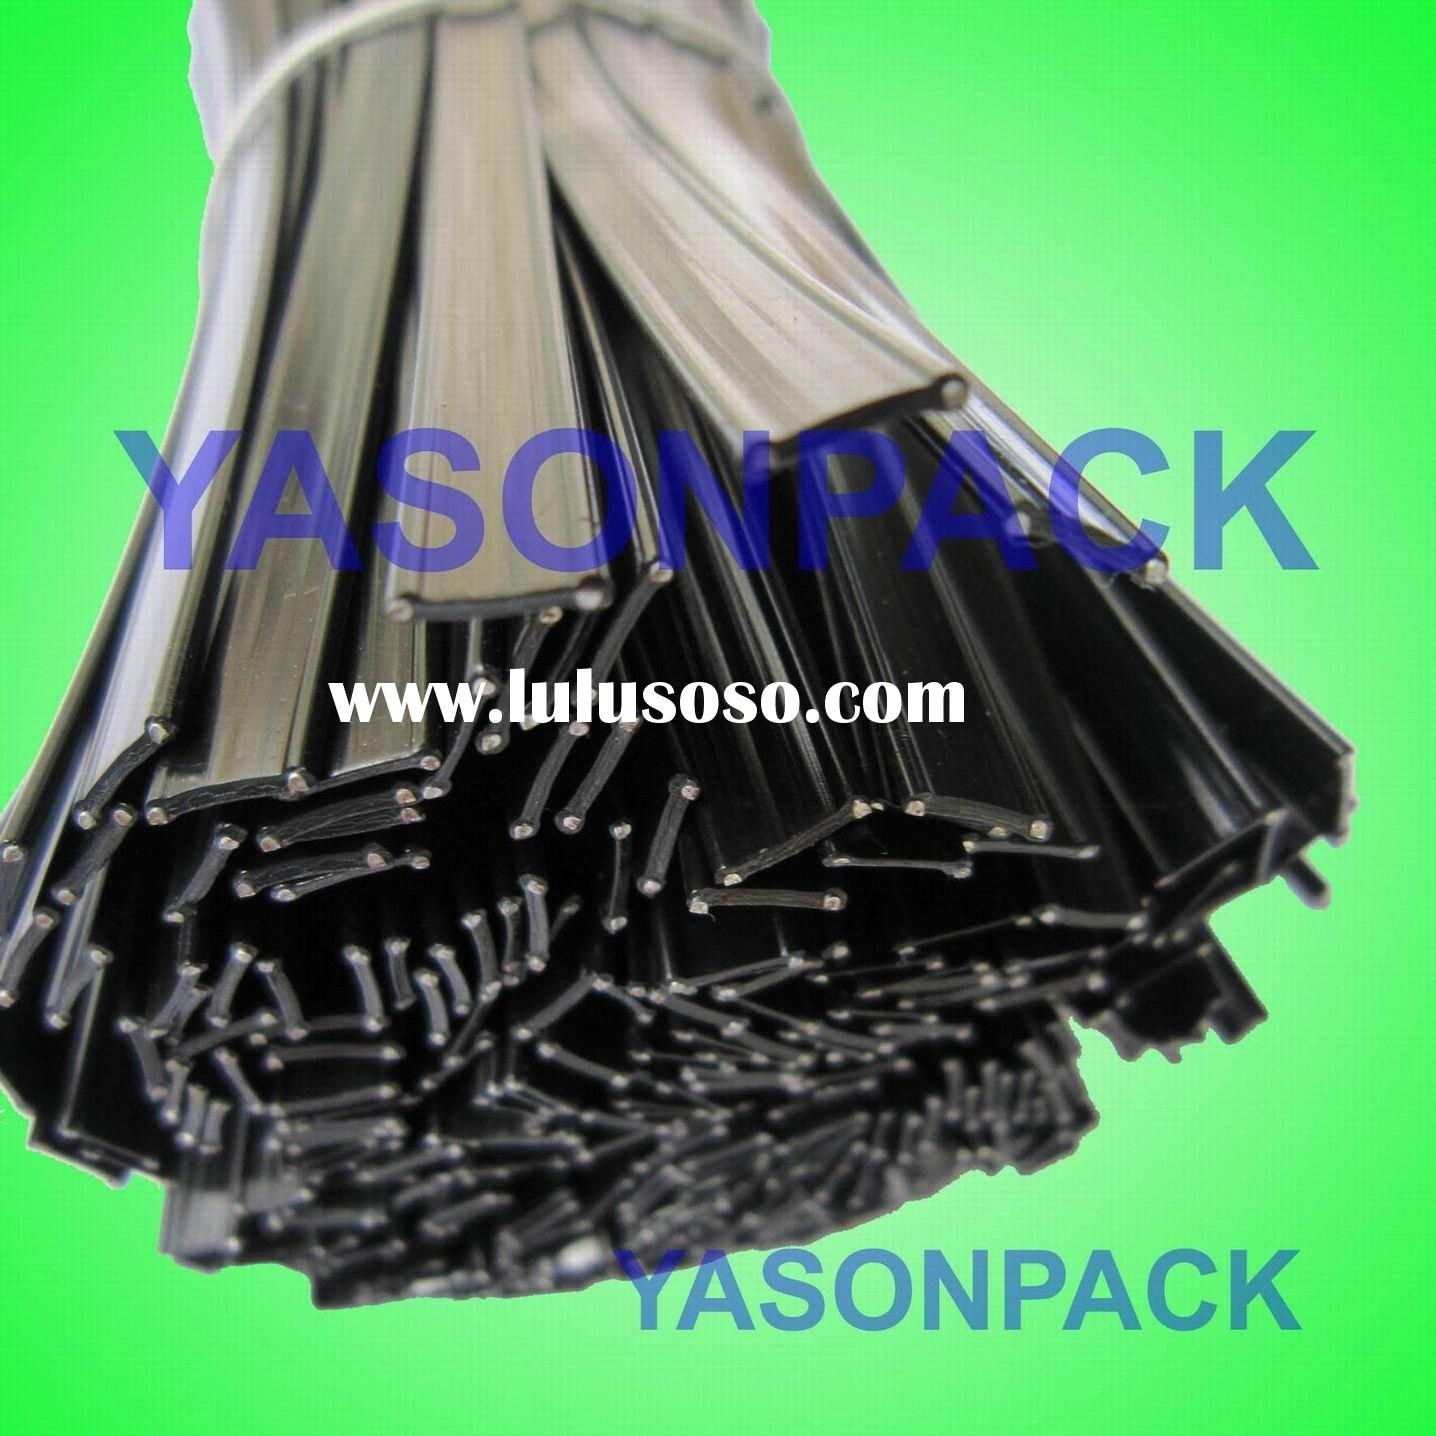 black and white gift/bags twist tie for bag packaging